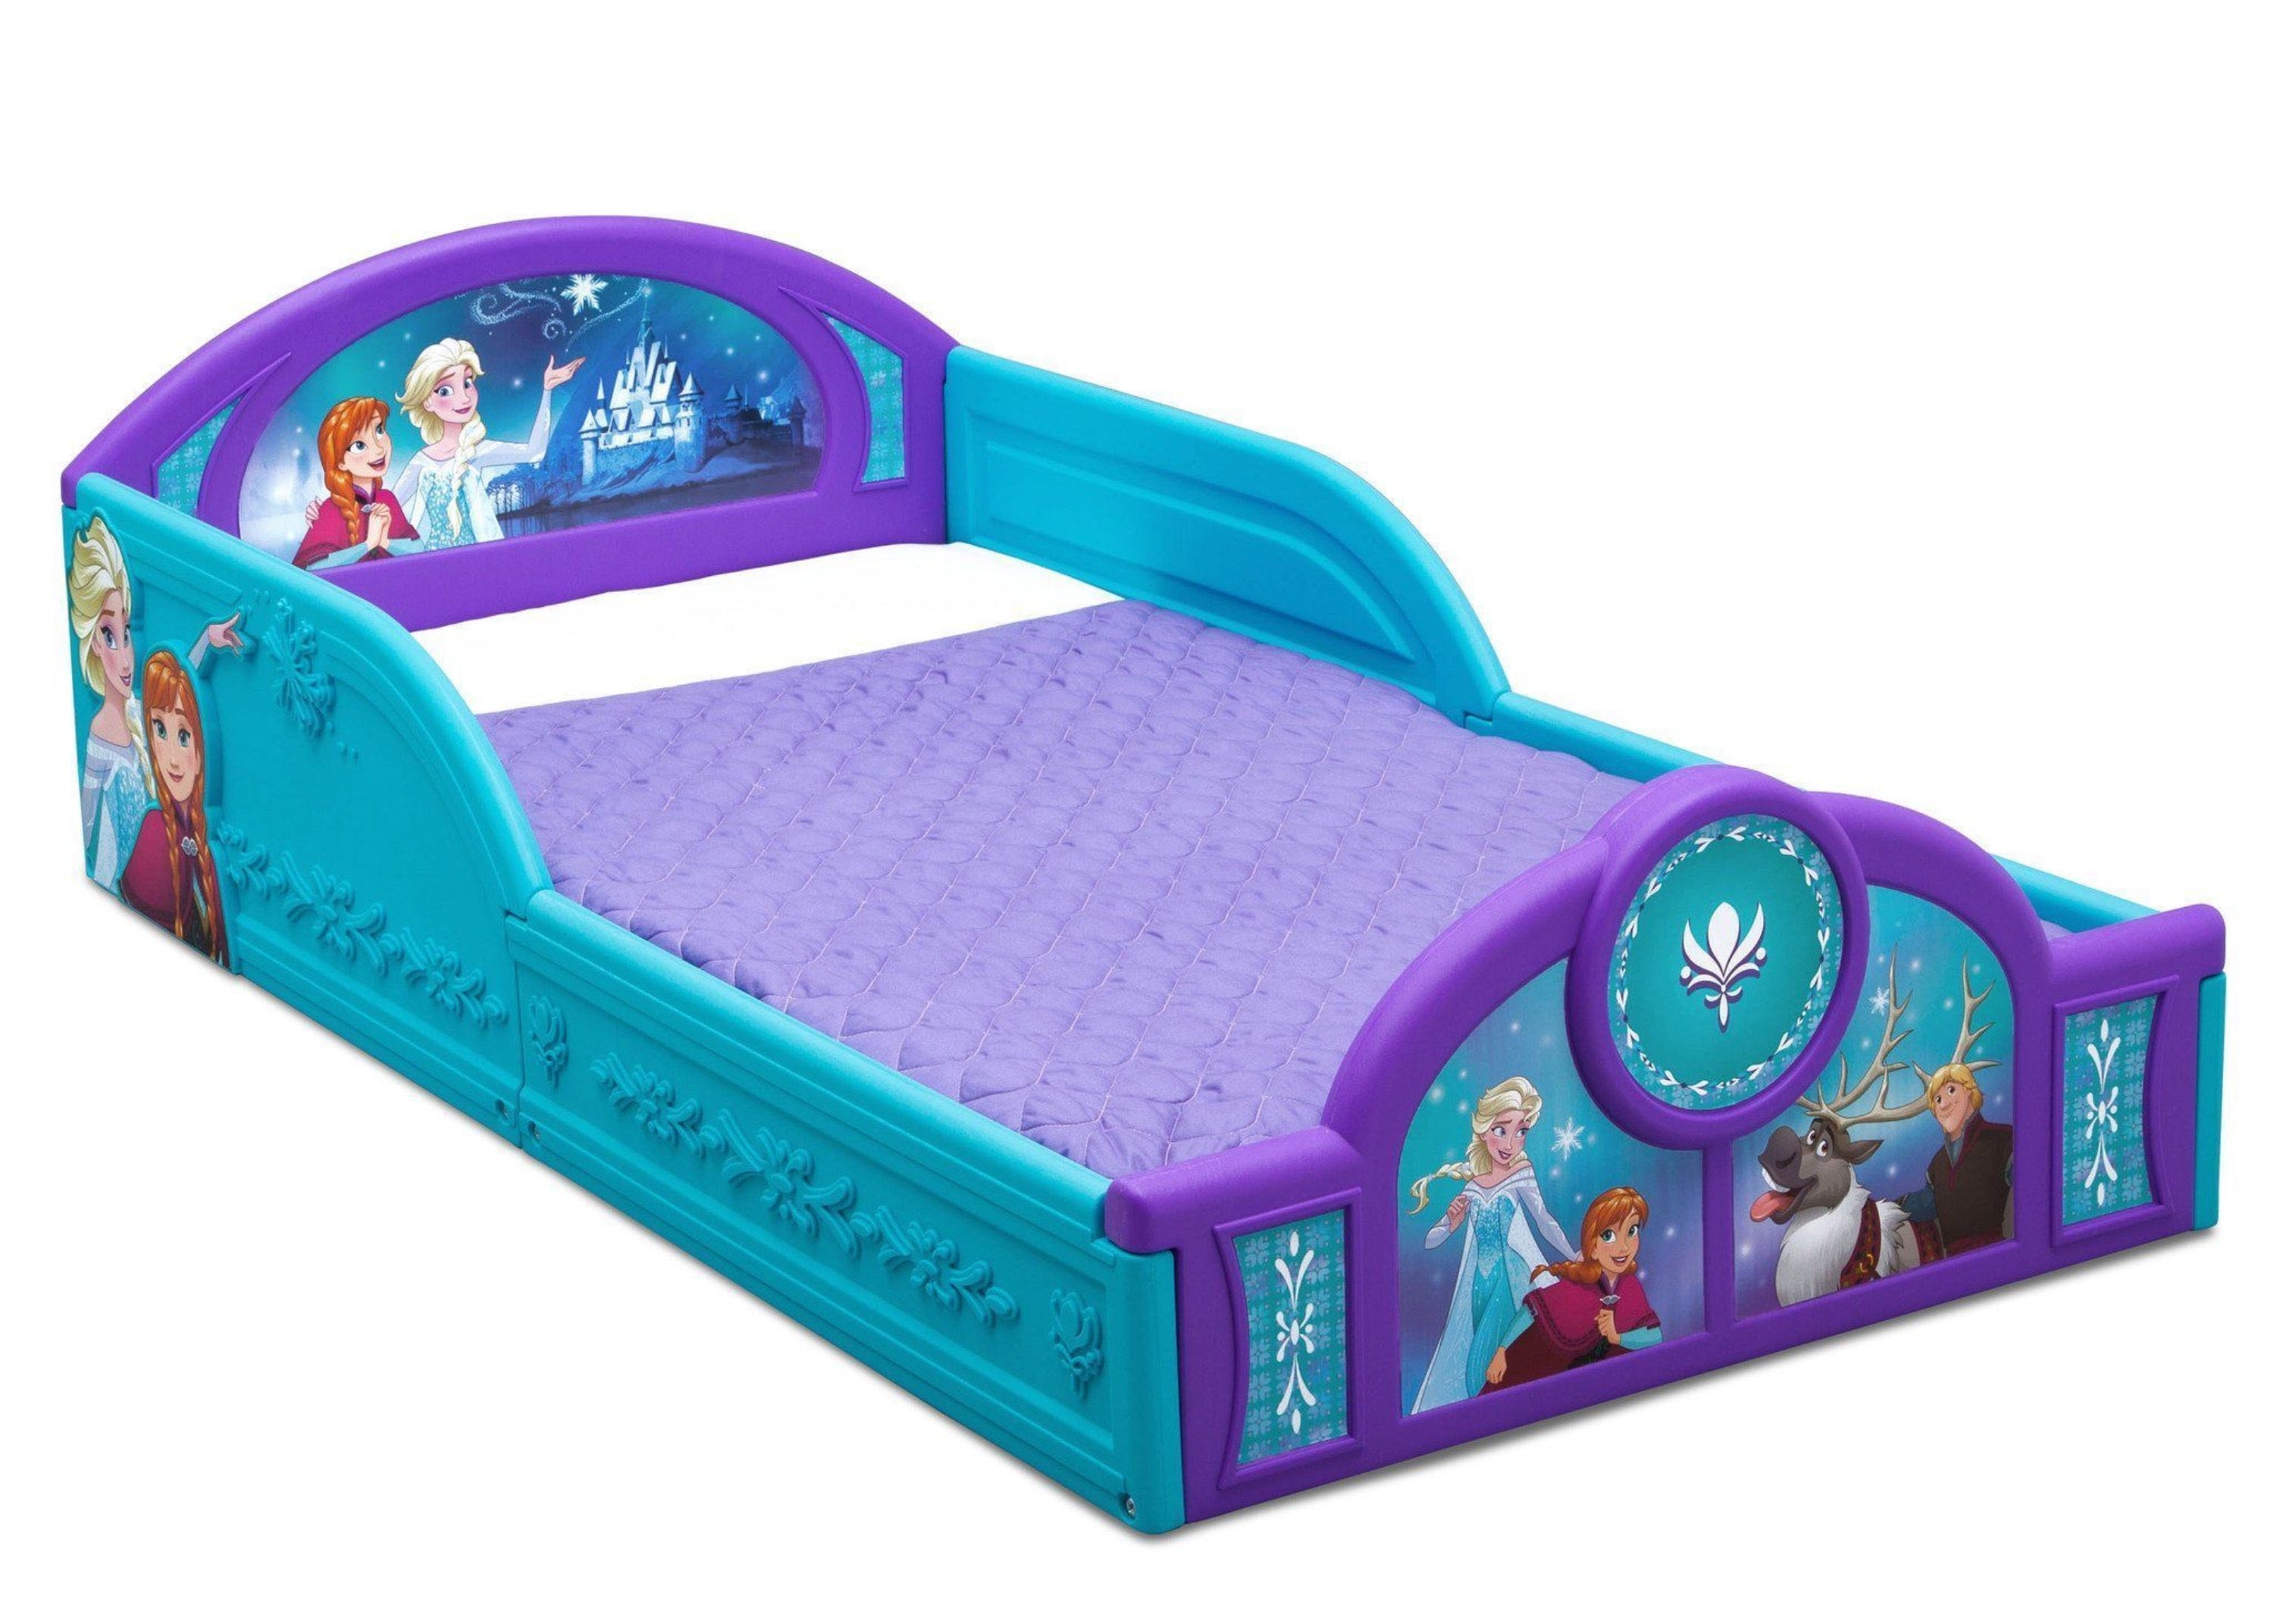 Disney's Frozen Deluxe Toddler Bed with Attached Guardrails,